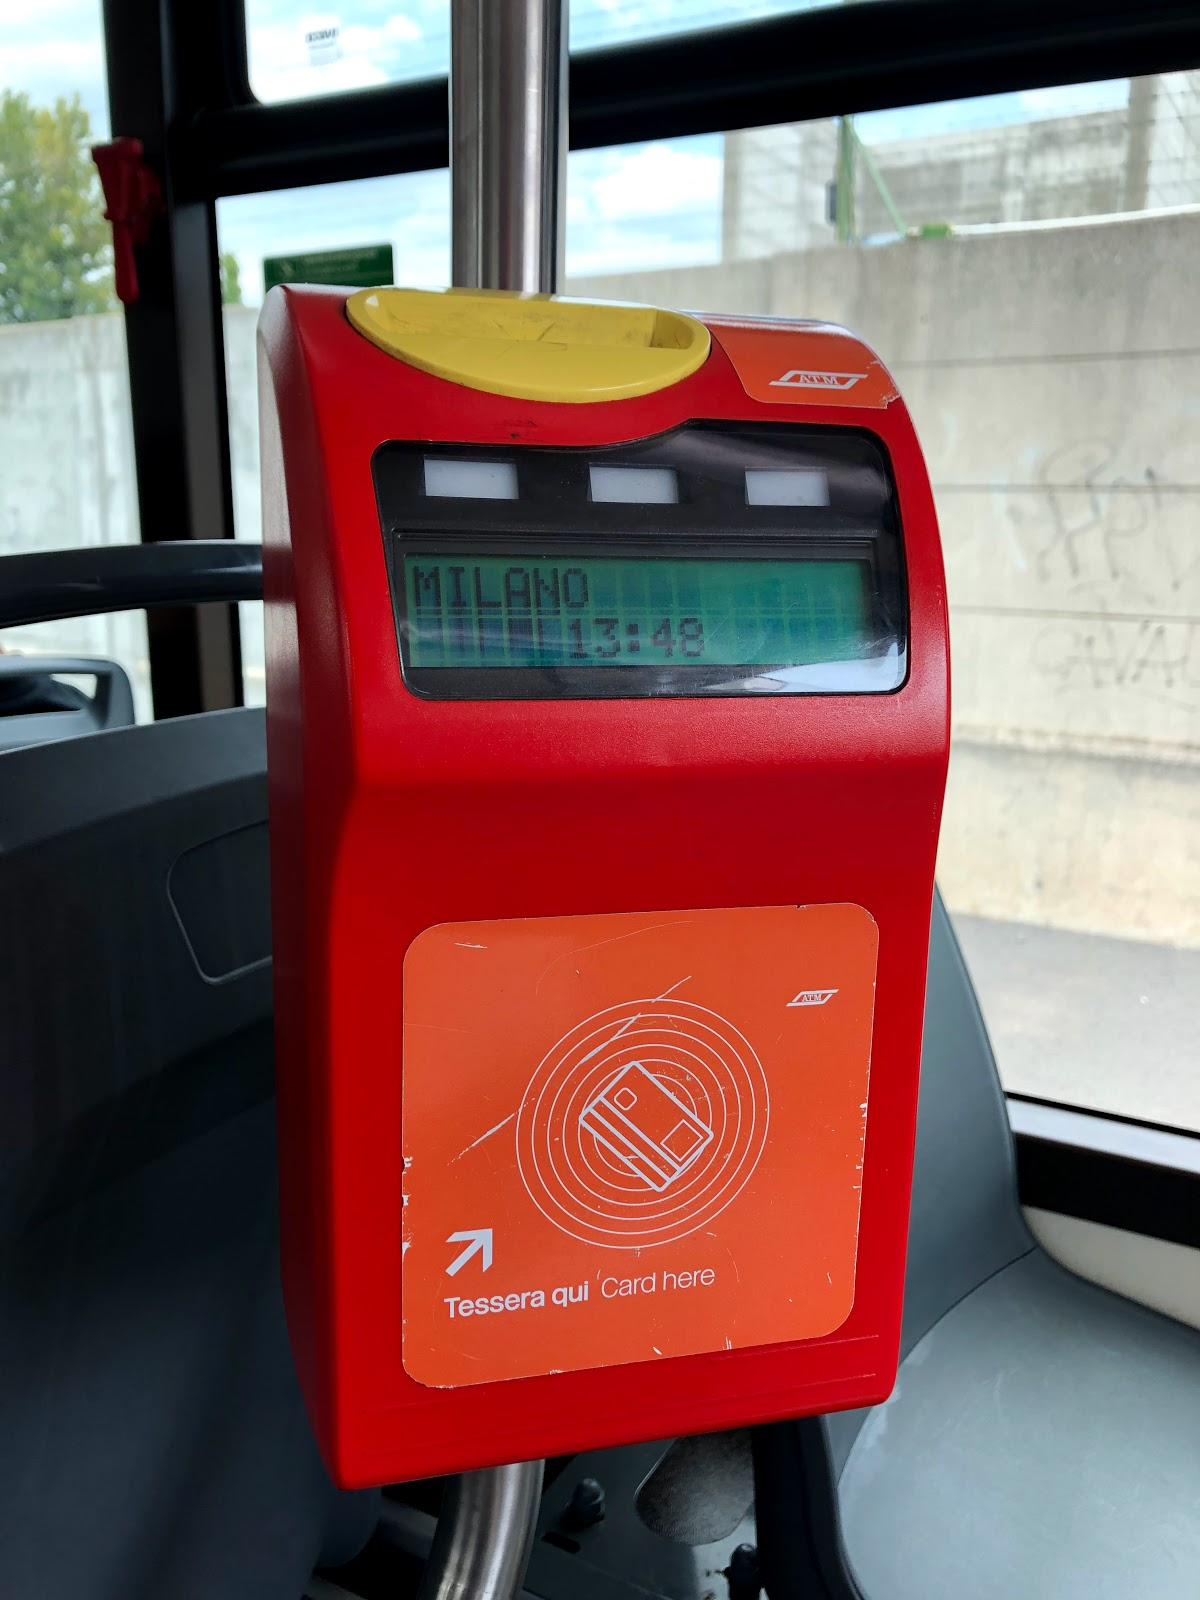 Make sure you validate the ticket in the Public Transport in Milan